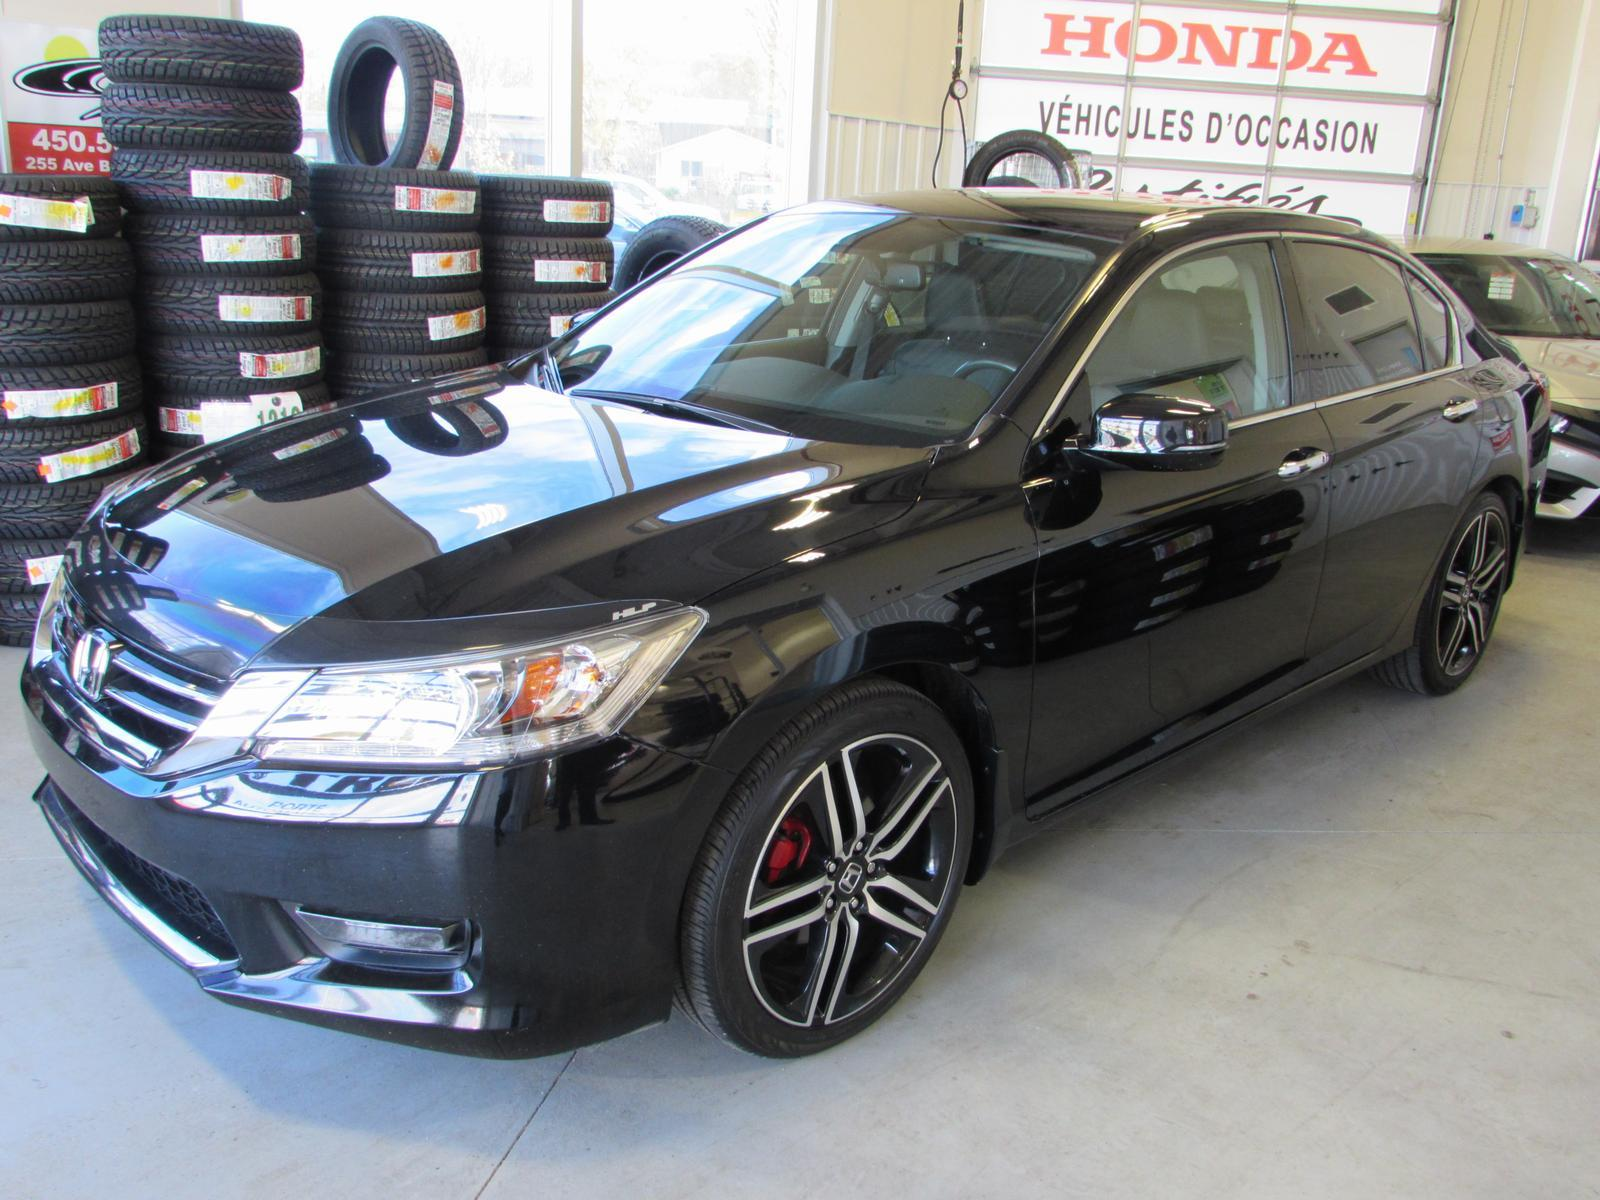 honda accord touring v6 2014 occasion vendre lachute chez honda lachute. Black Bedroom Furniture Sets. Home Design Ideas